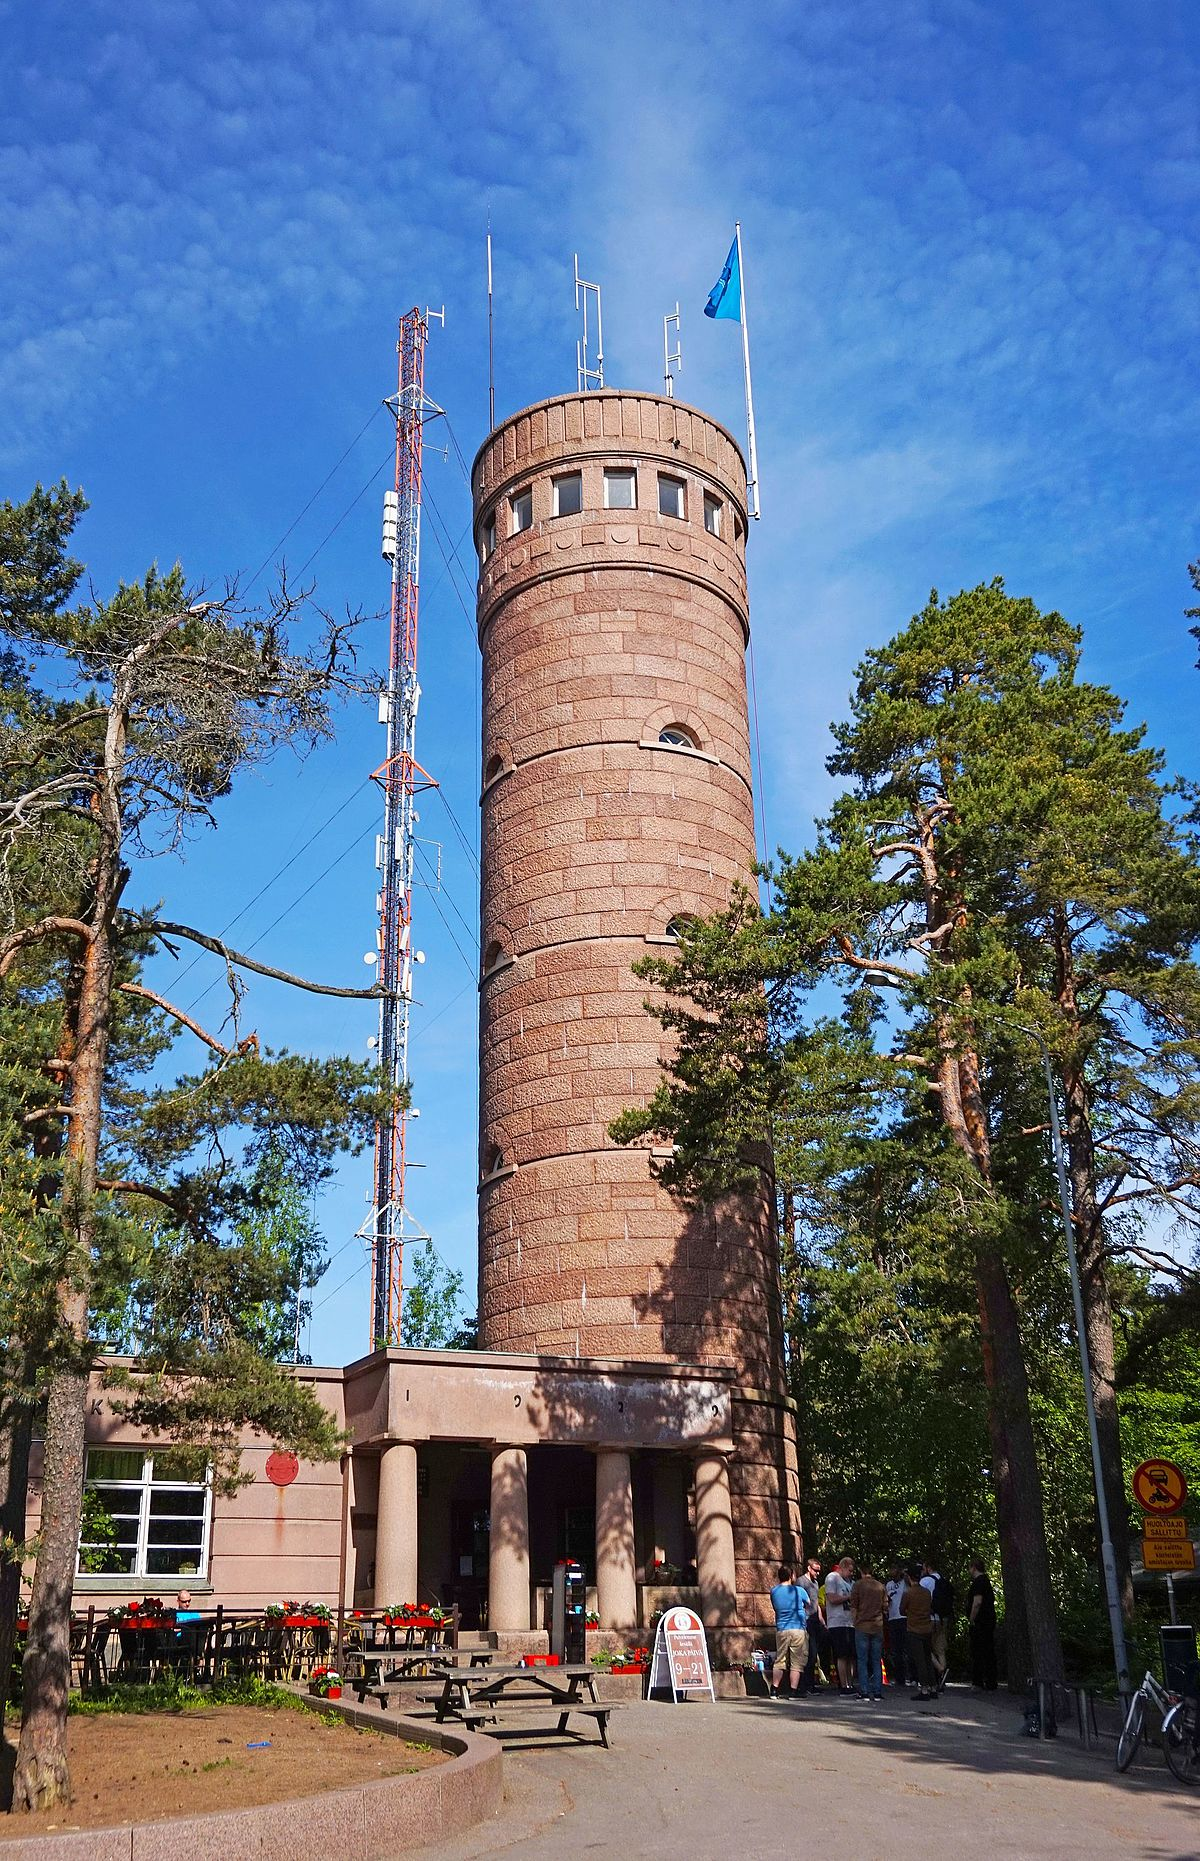 Pyynikki Observation Tower Wikipedia